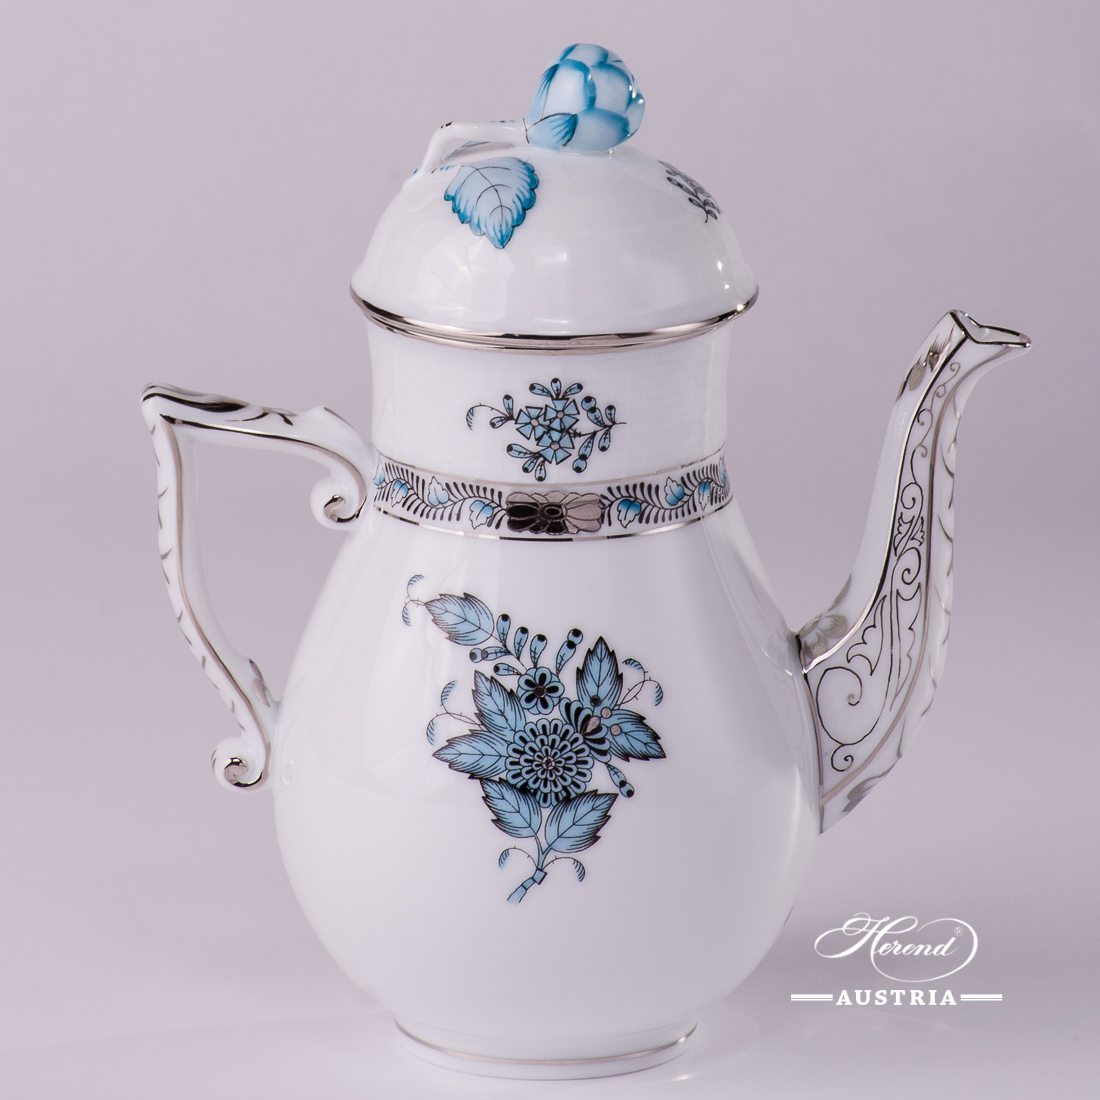 Apponyi Turquoise Coffee Pot - 615-0-12 ATQ3-PT - Herend Porcelain